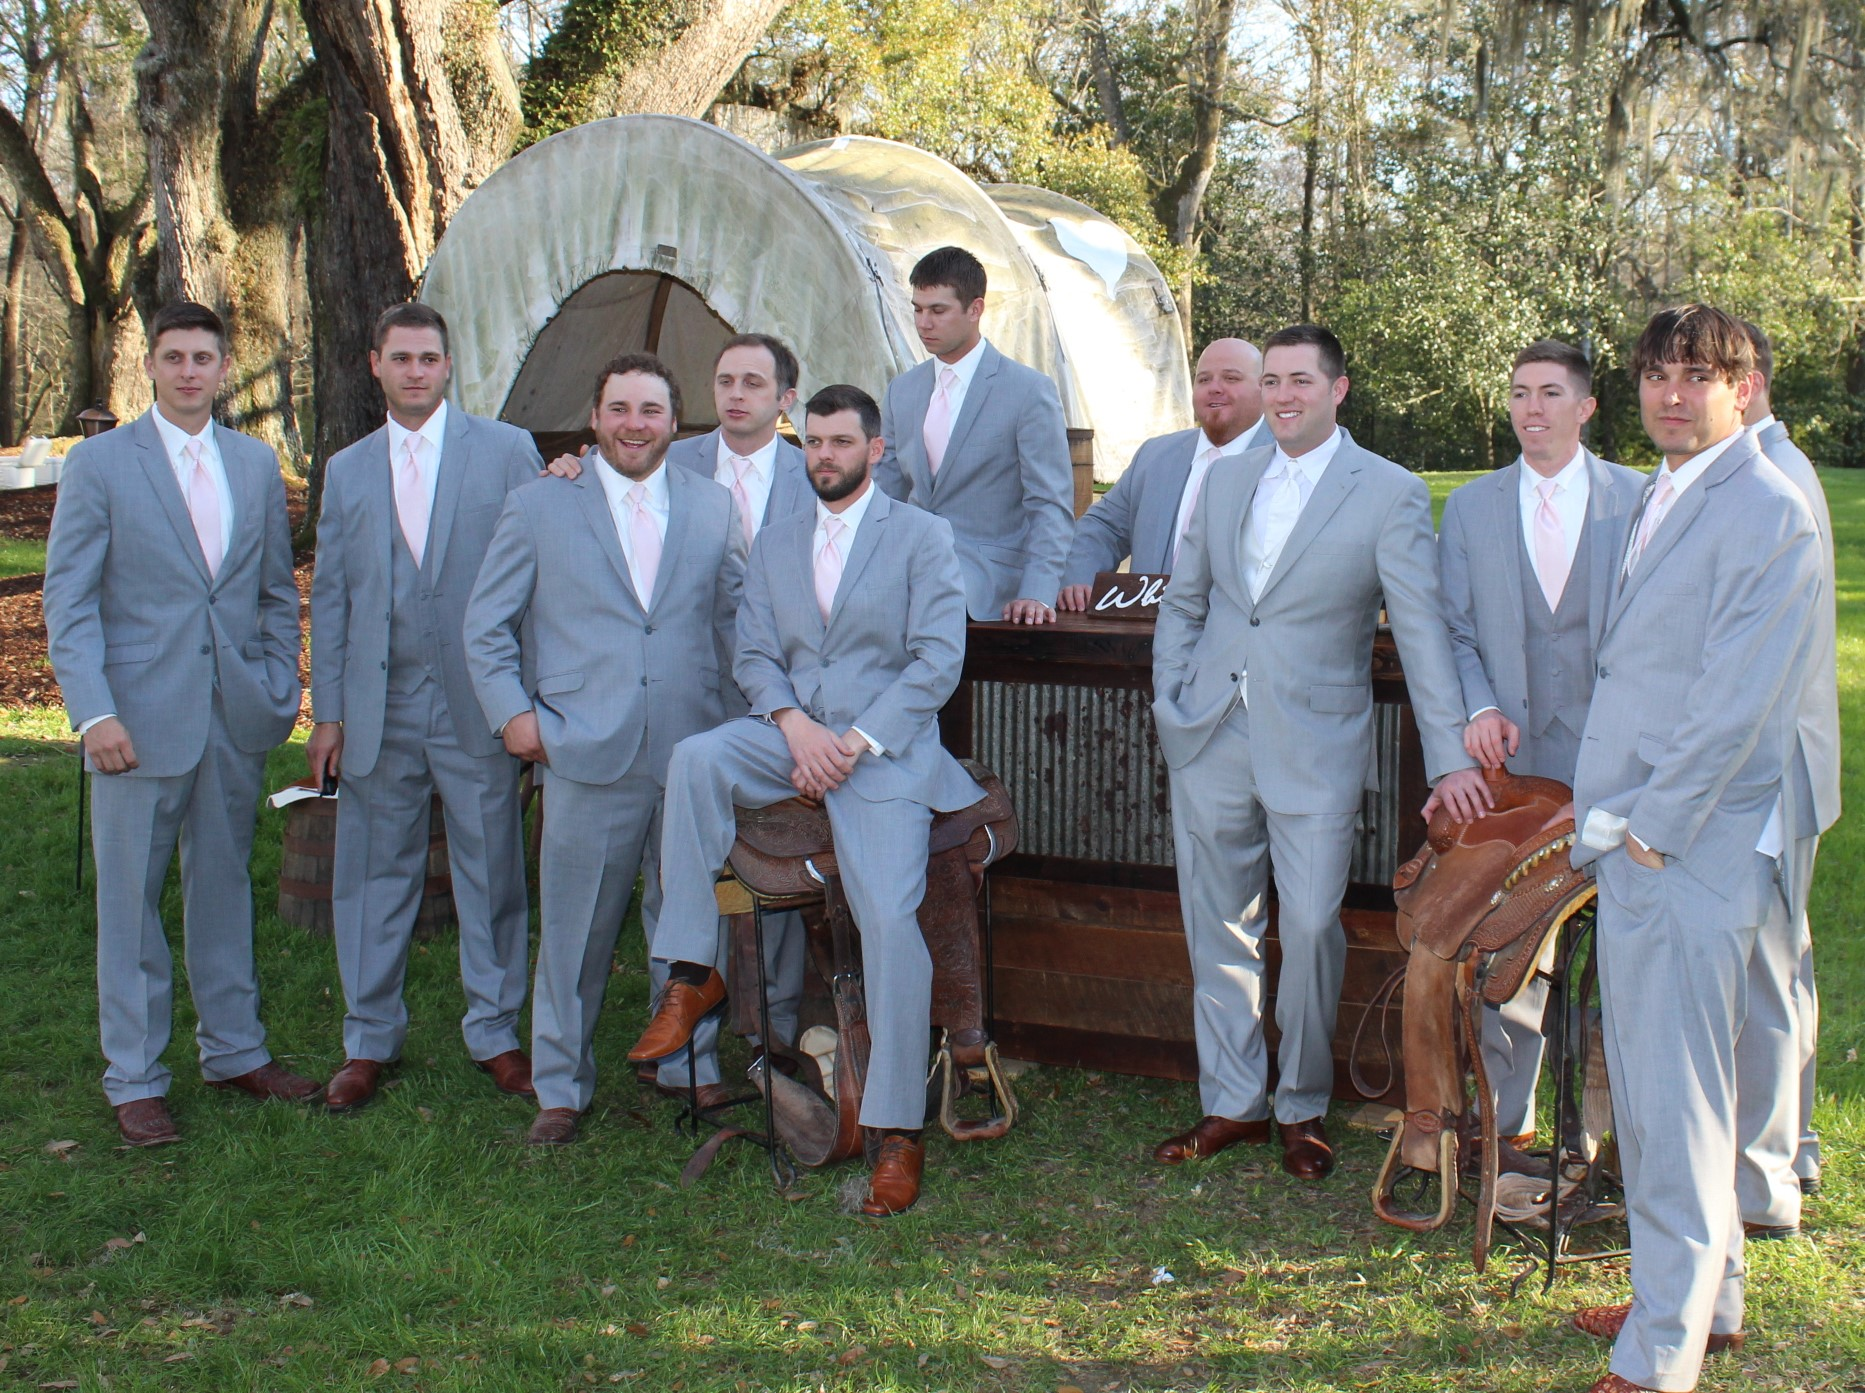 picture of 9 people in matching suits